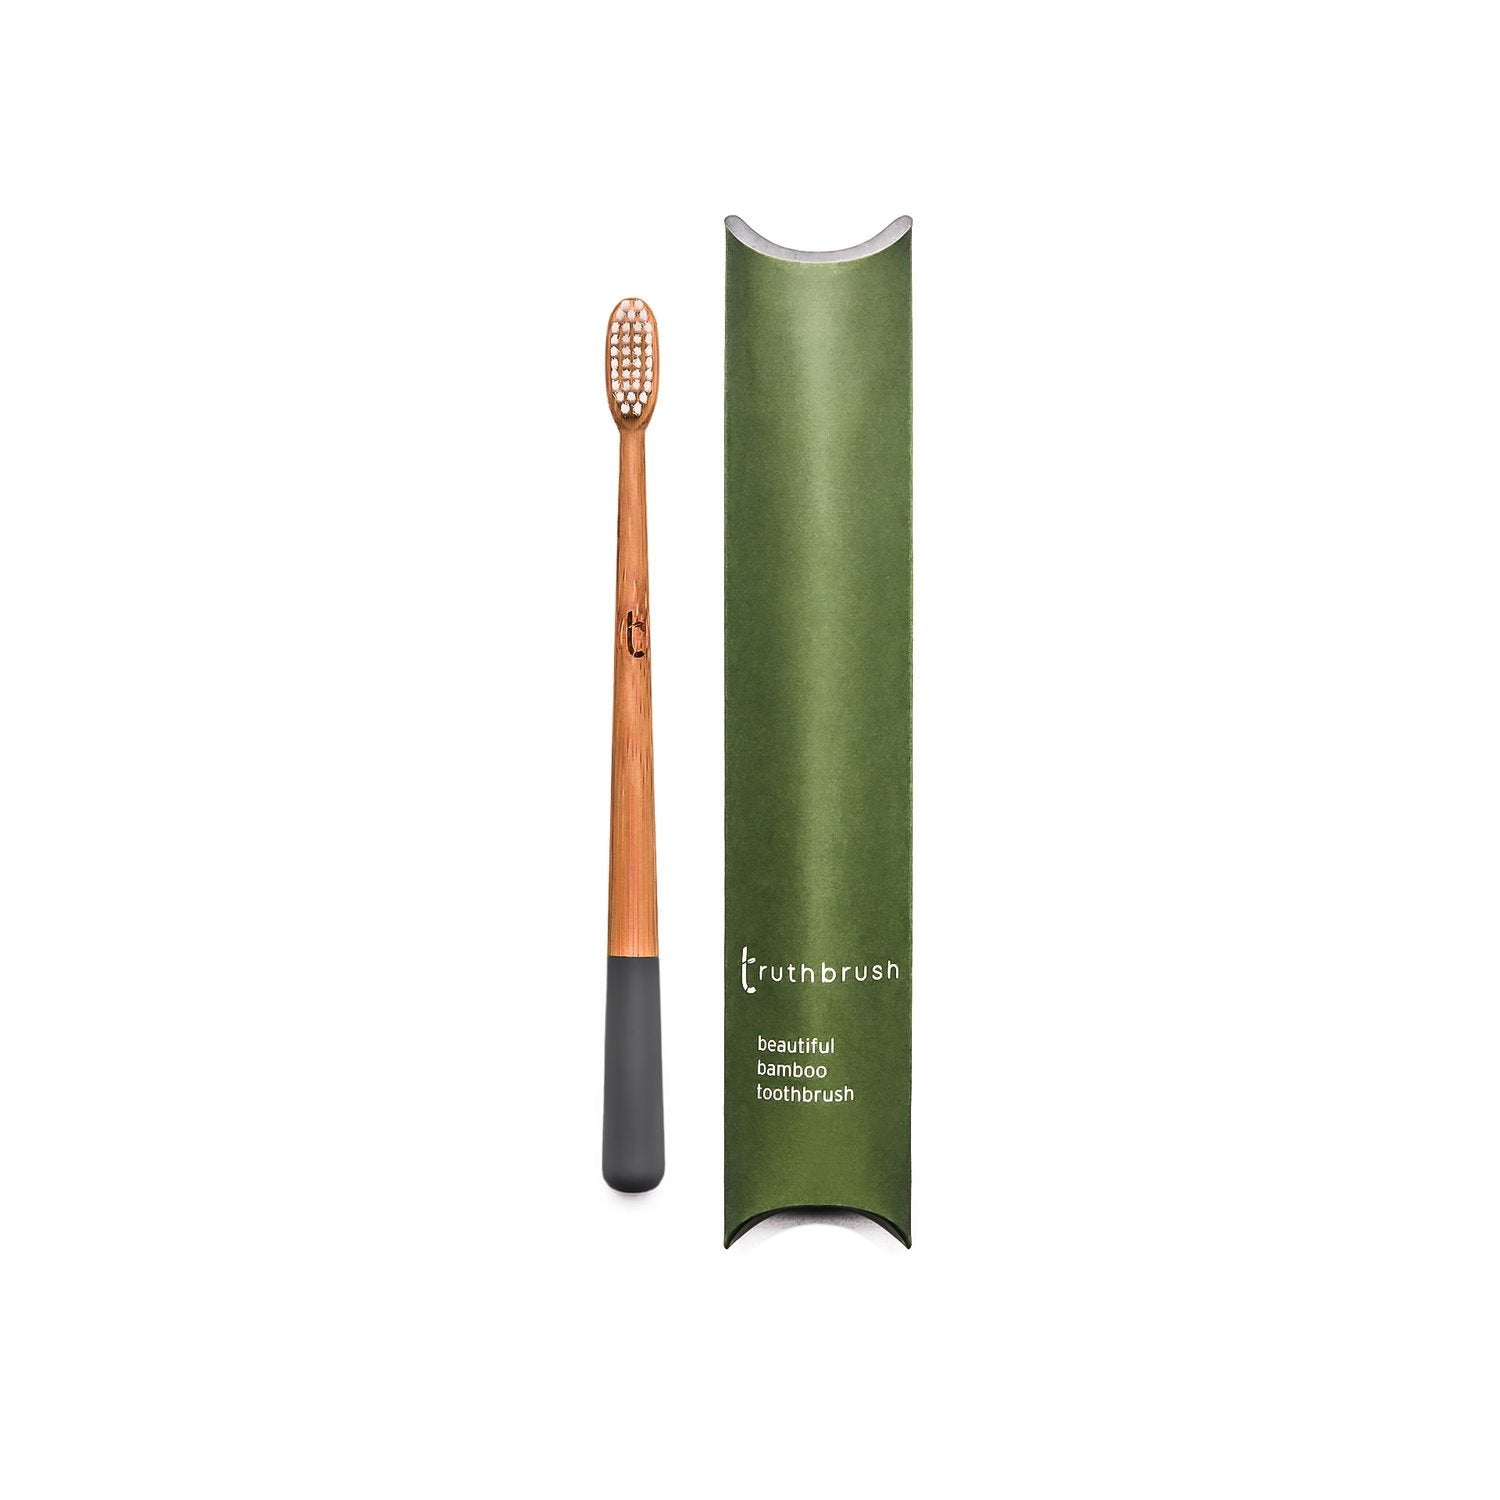 Truthbrush bamboo toothbrush white and storm grey